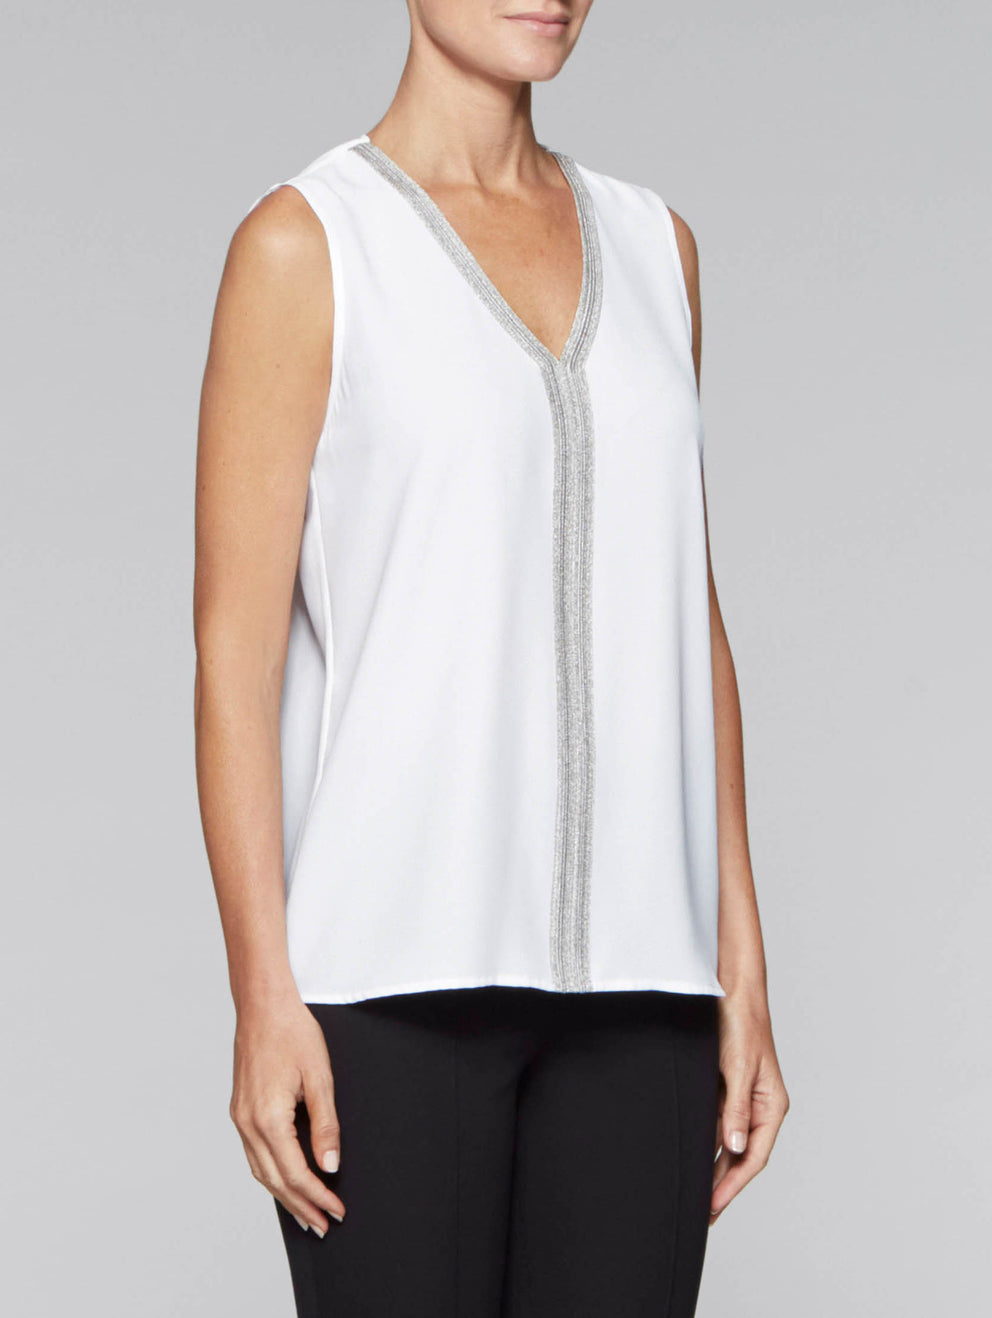 White and Silver Crepe de Chine Tank